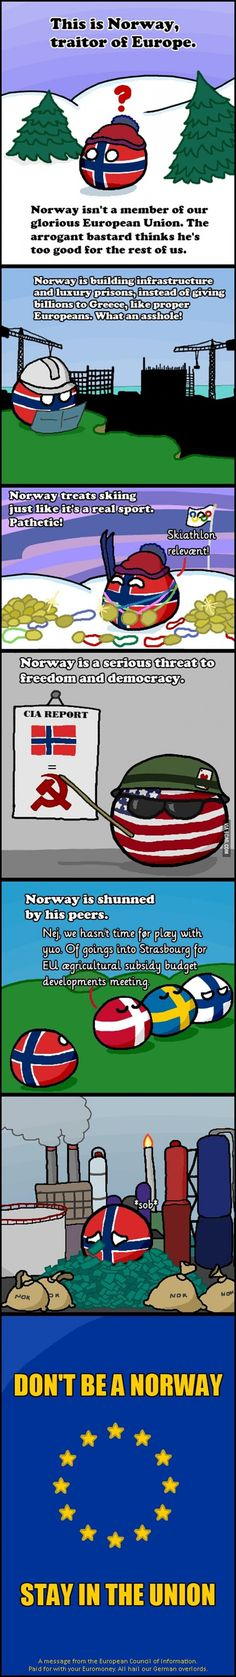 Damn you Norway<<<<< Godamnit, Nor XD<<OK FIRST OFF MOST OF THIS IS LUKAS' FAULT I HAD NOTHING TO DO WITH IT -Louise